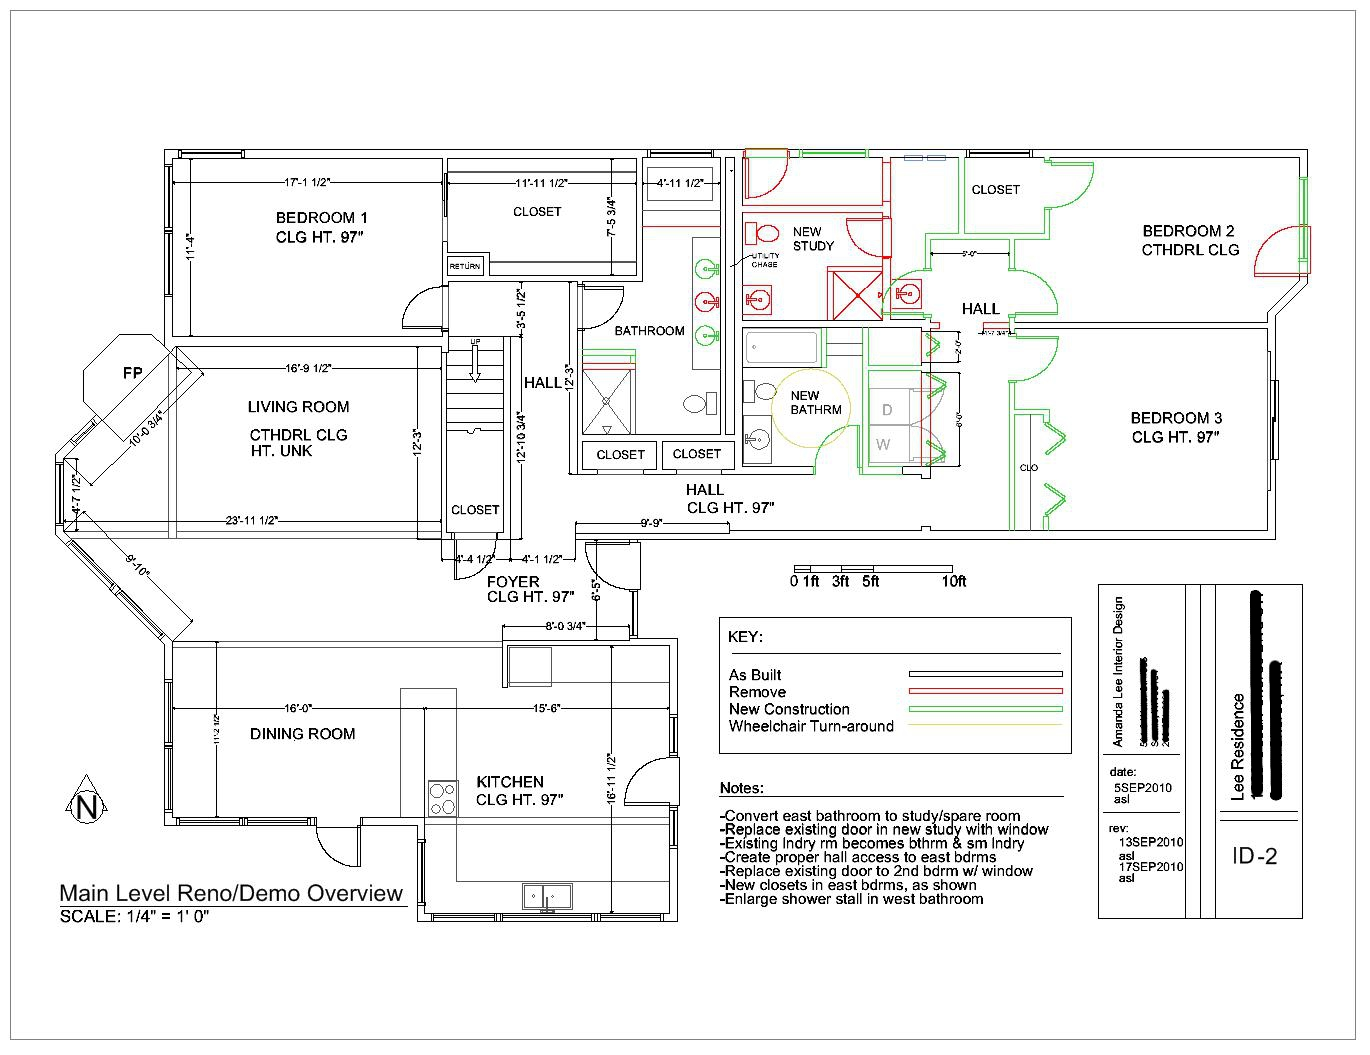 and a floor plan....